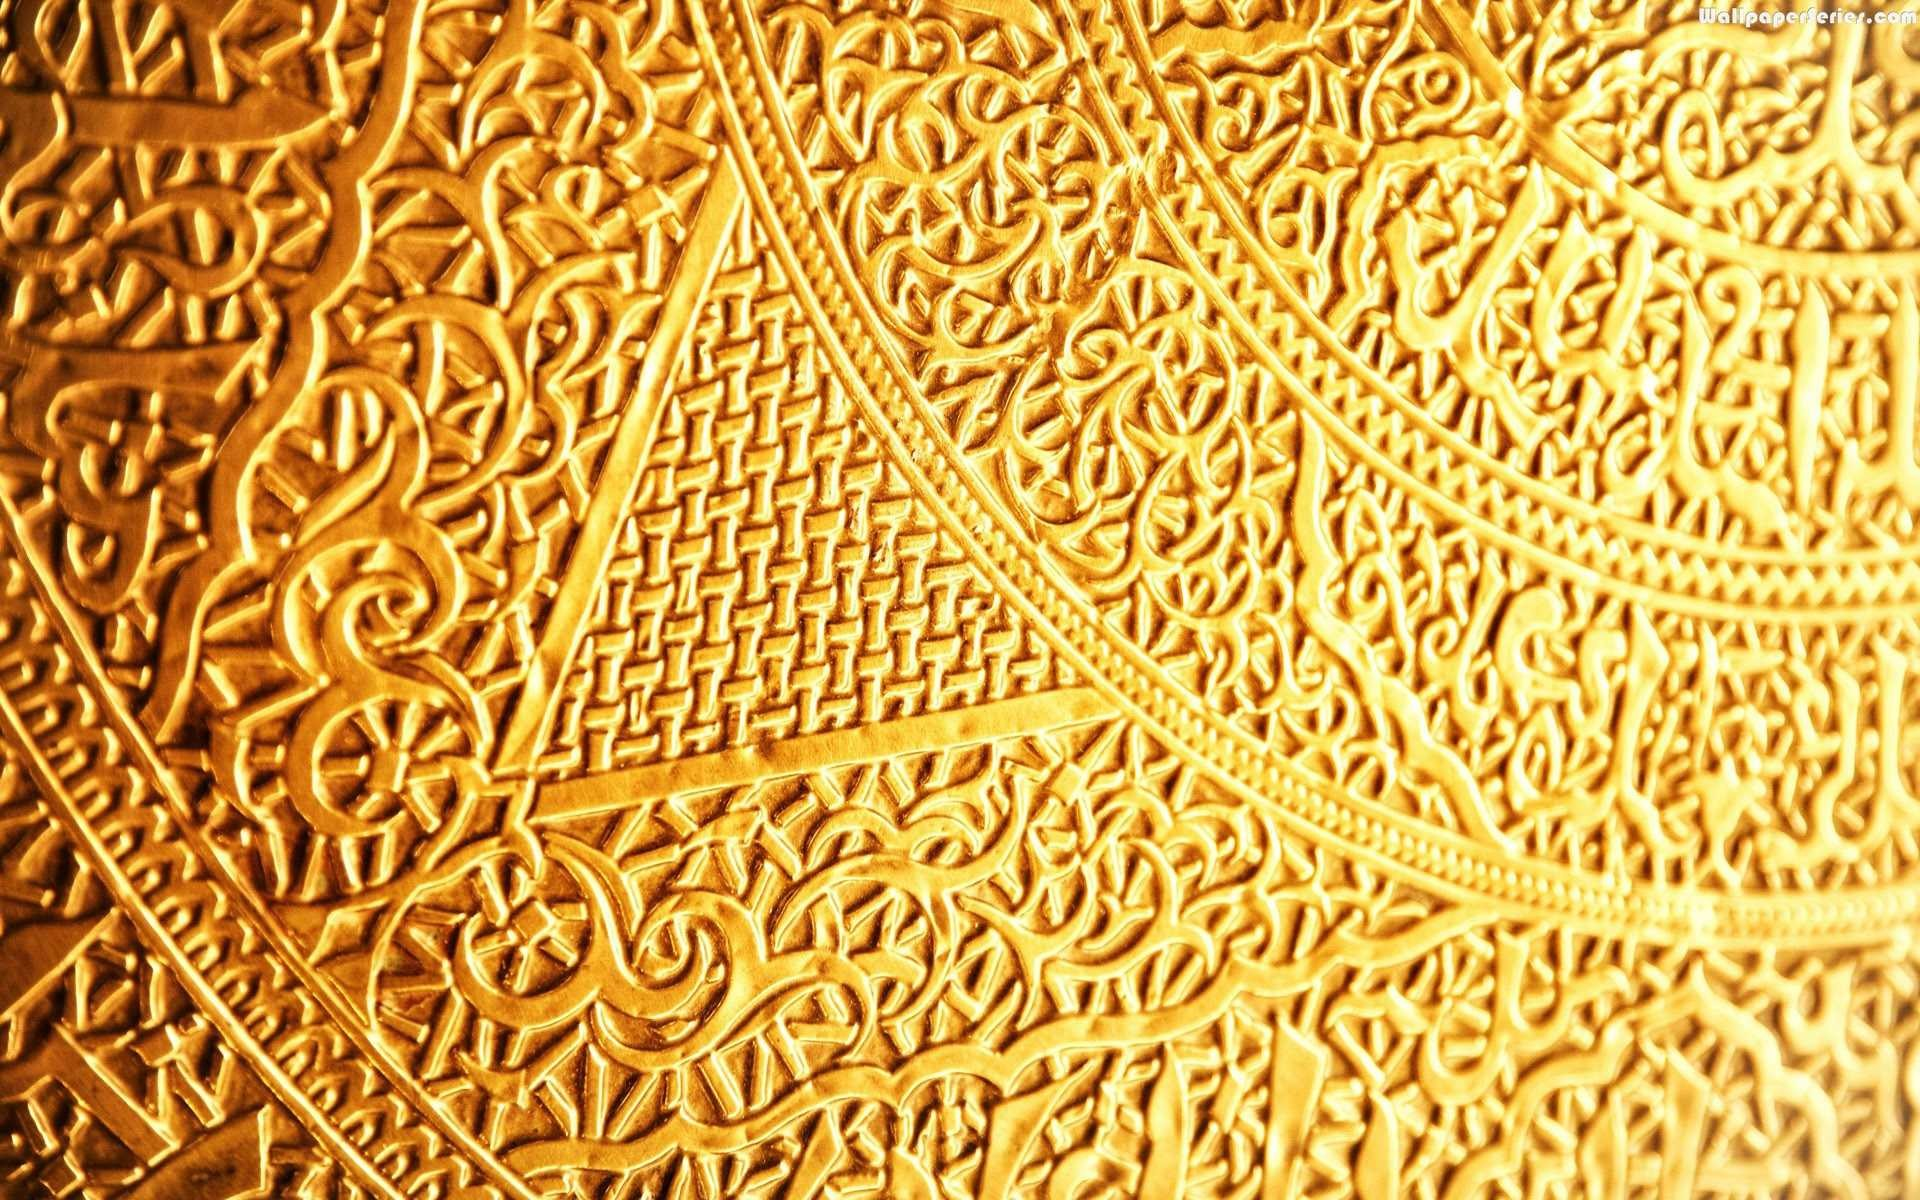 Res: 1920x1200, Gold Image On Wallpaper Hd 1920 x 1200 px 692.31 KB design gold color  pattern glitter